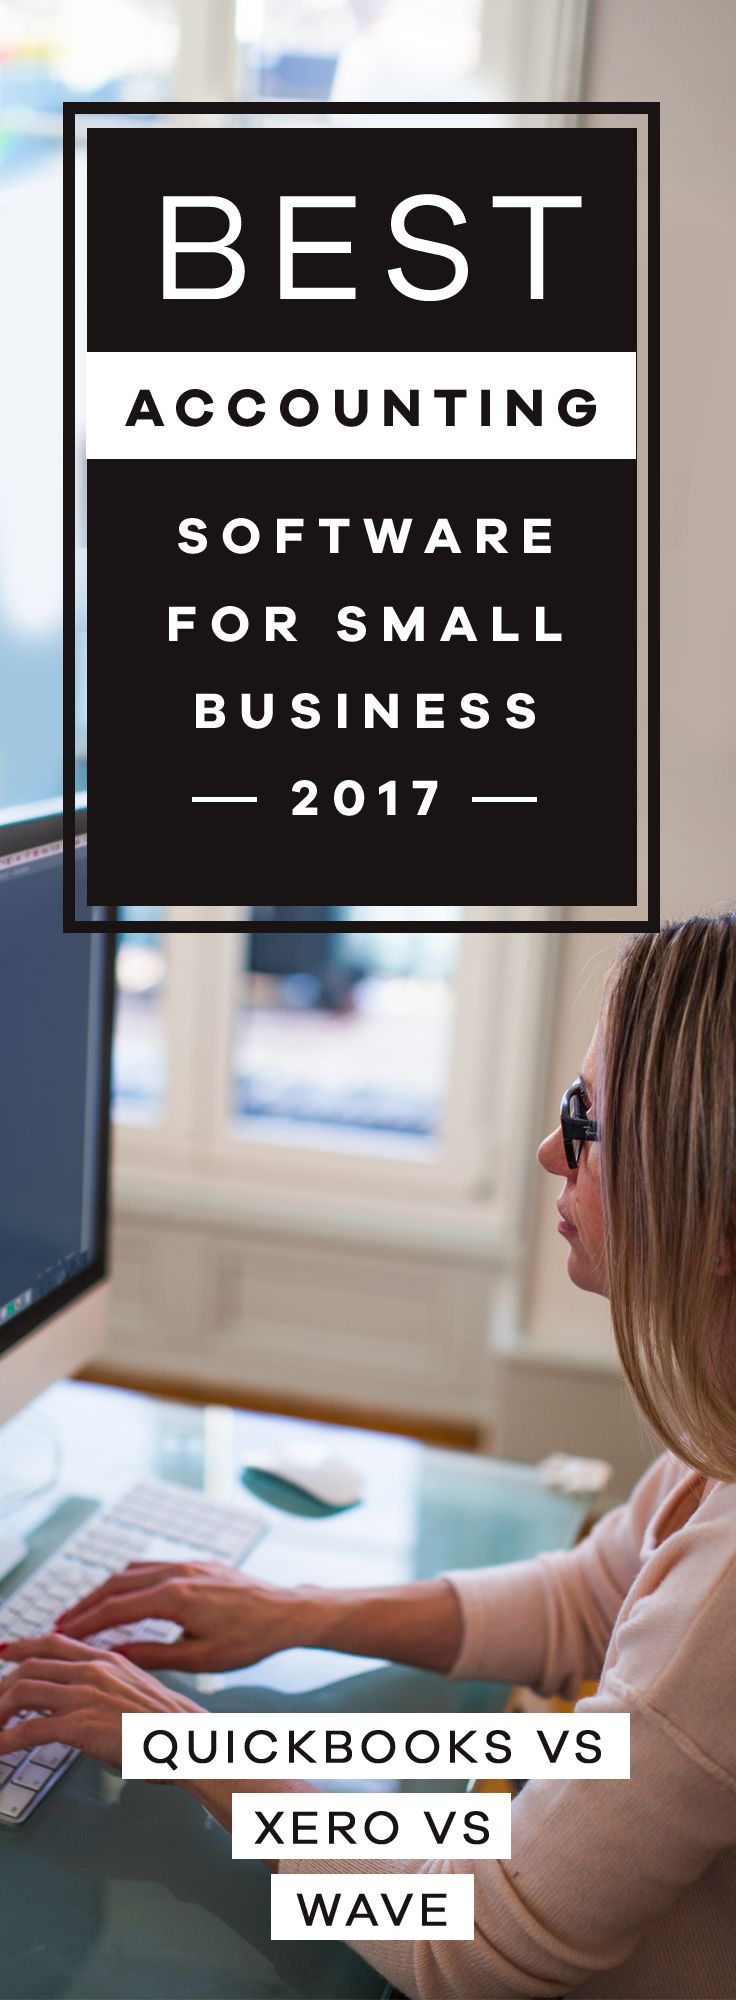 Best Accounting Software for Small Business 2017: QuickBooks vs Xero vs Wave